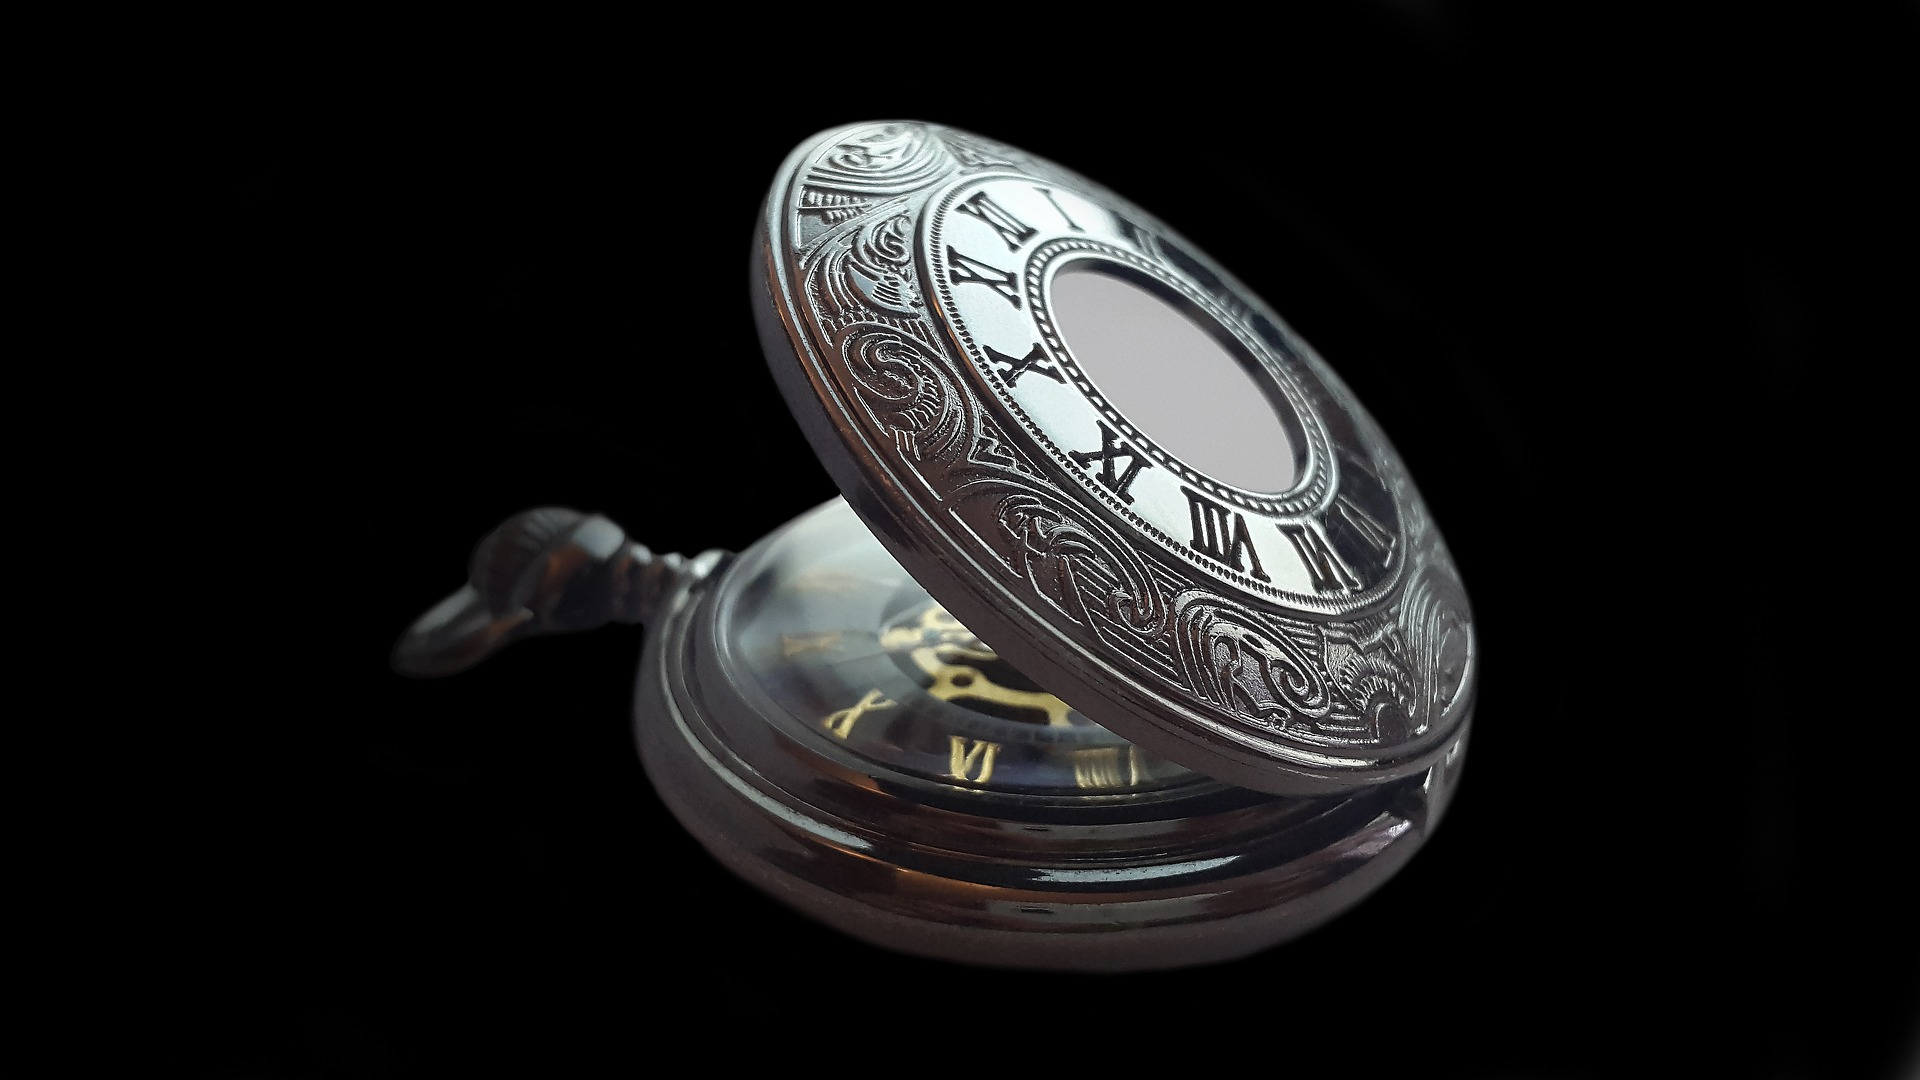 pocket_watch_2036304_1920.jpg